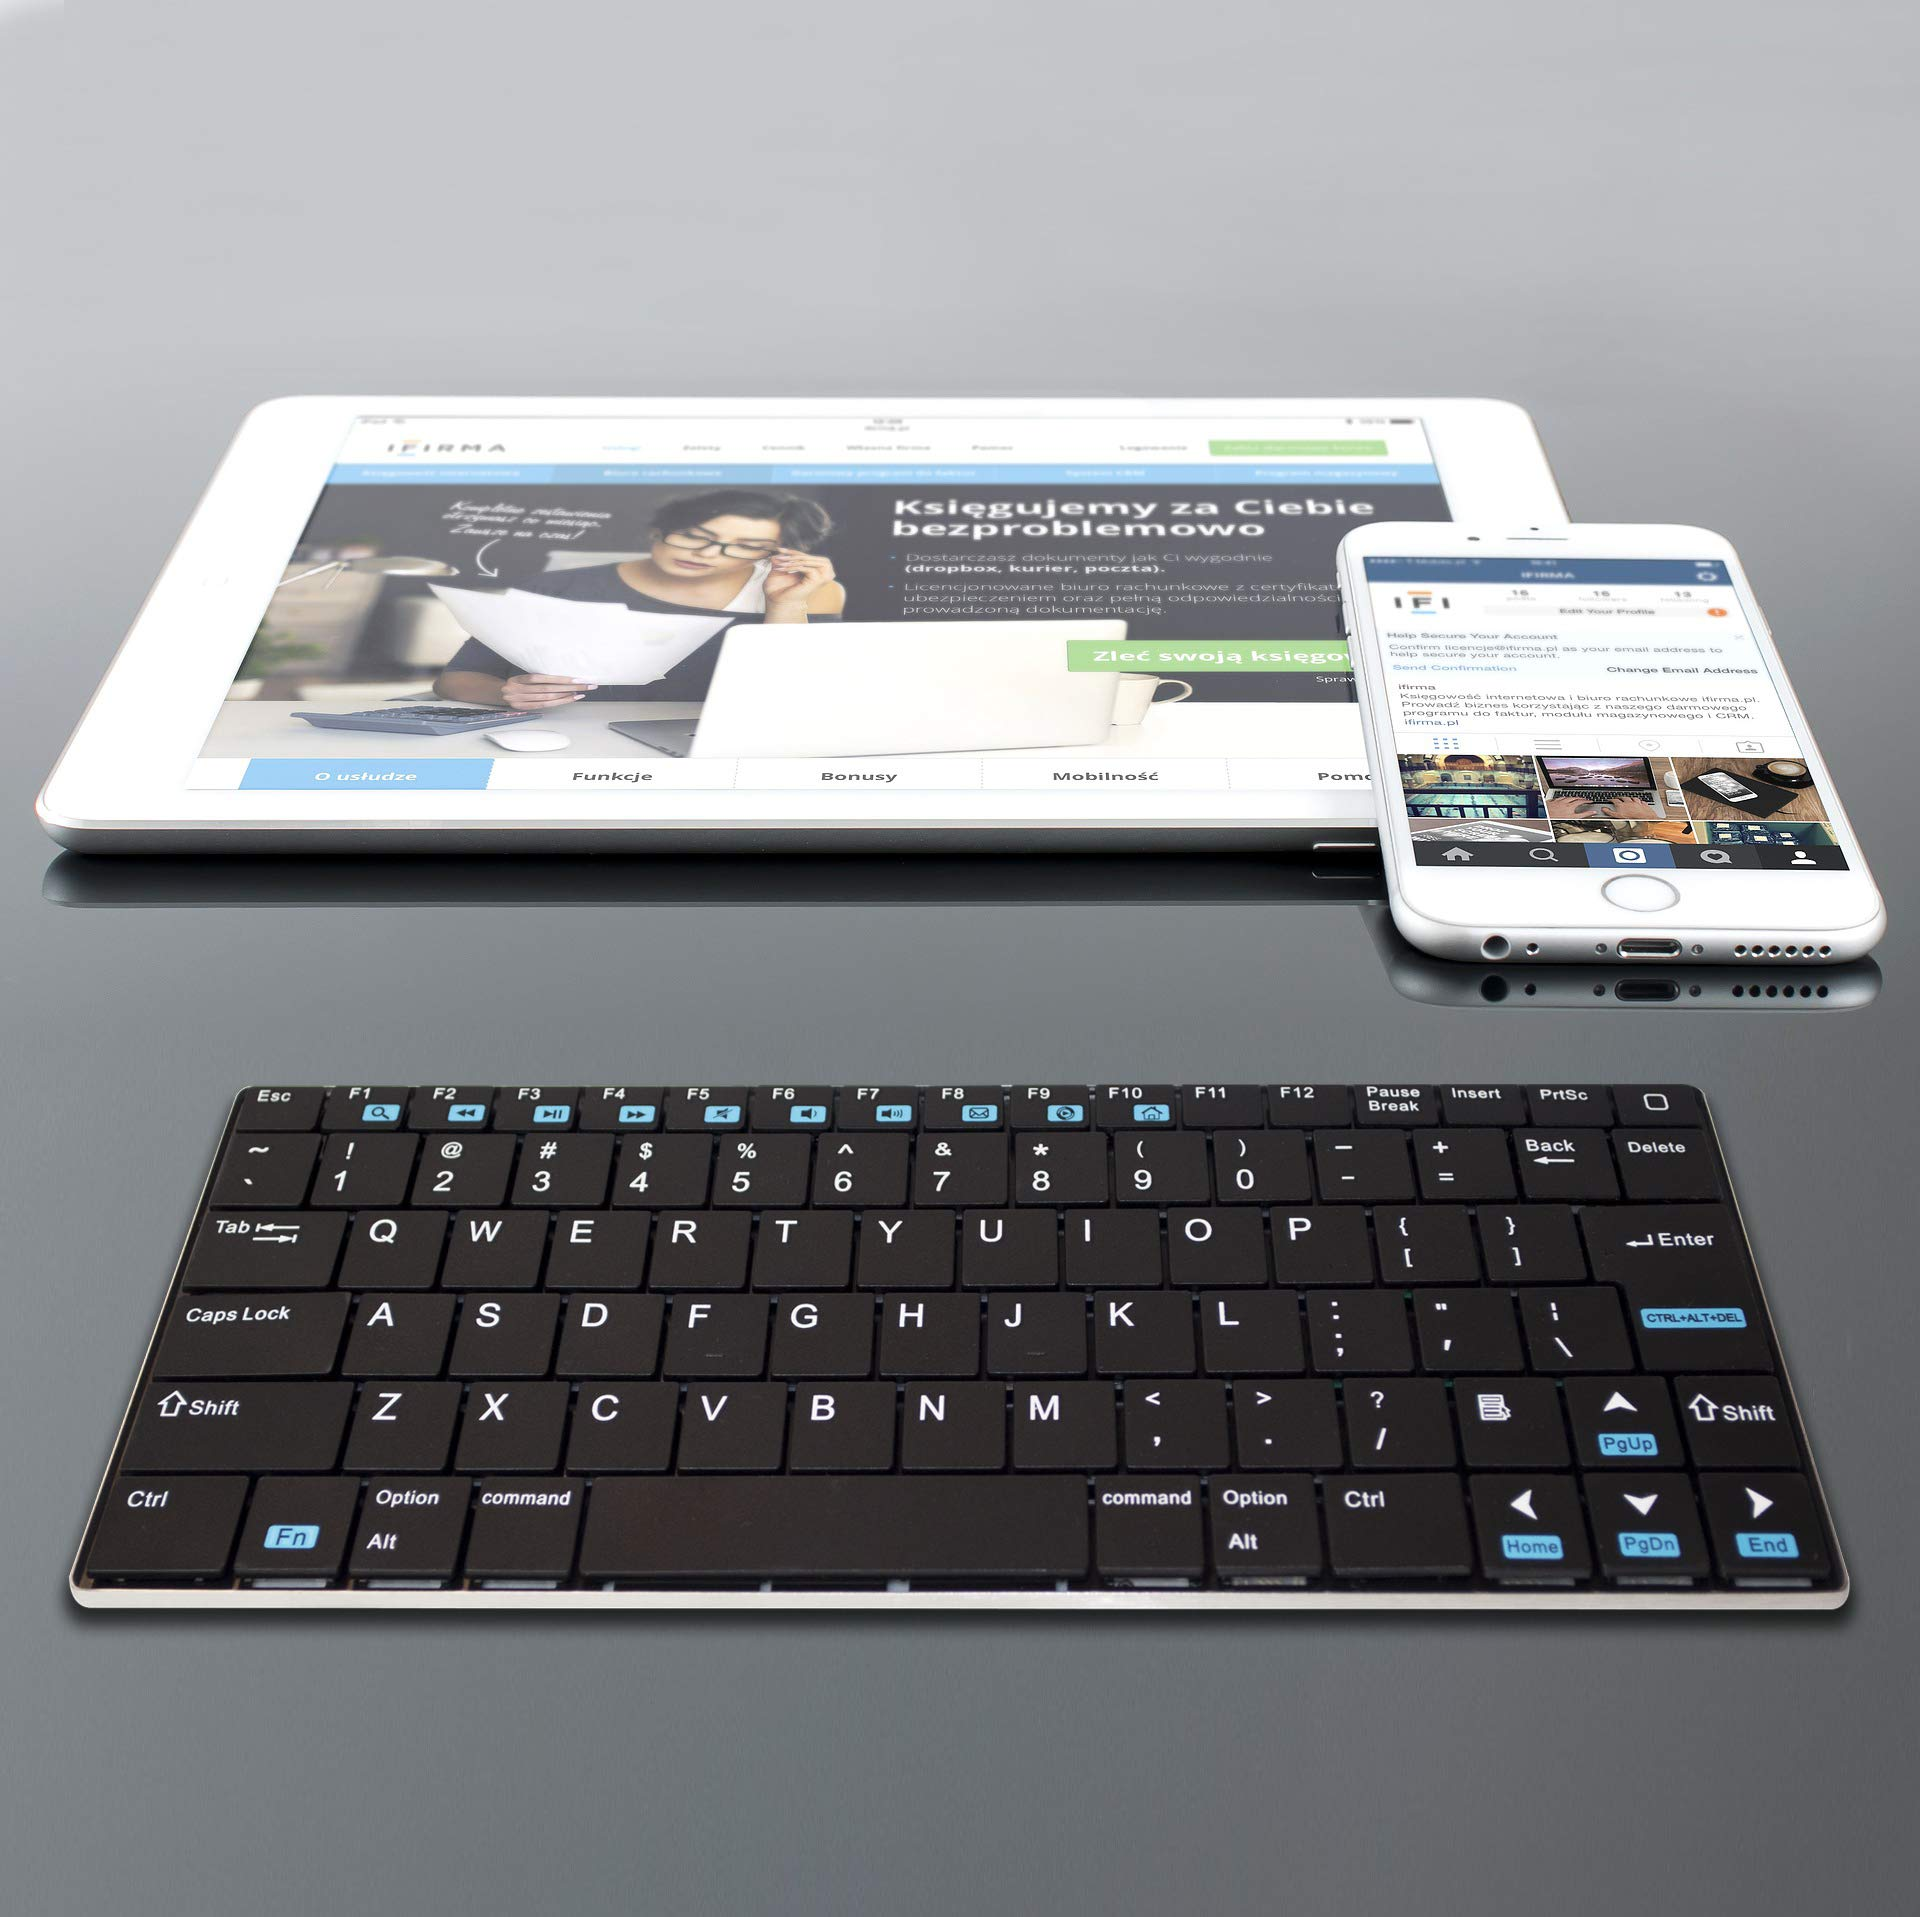 Rii Mini K12 Stainless Steel Cover Wireless Keyboard with Built-in